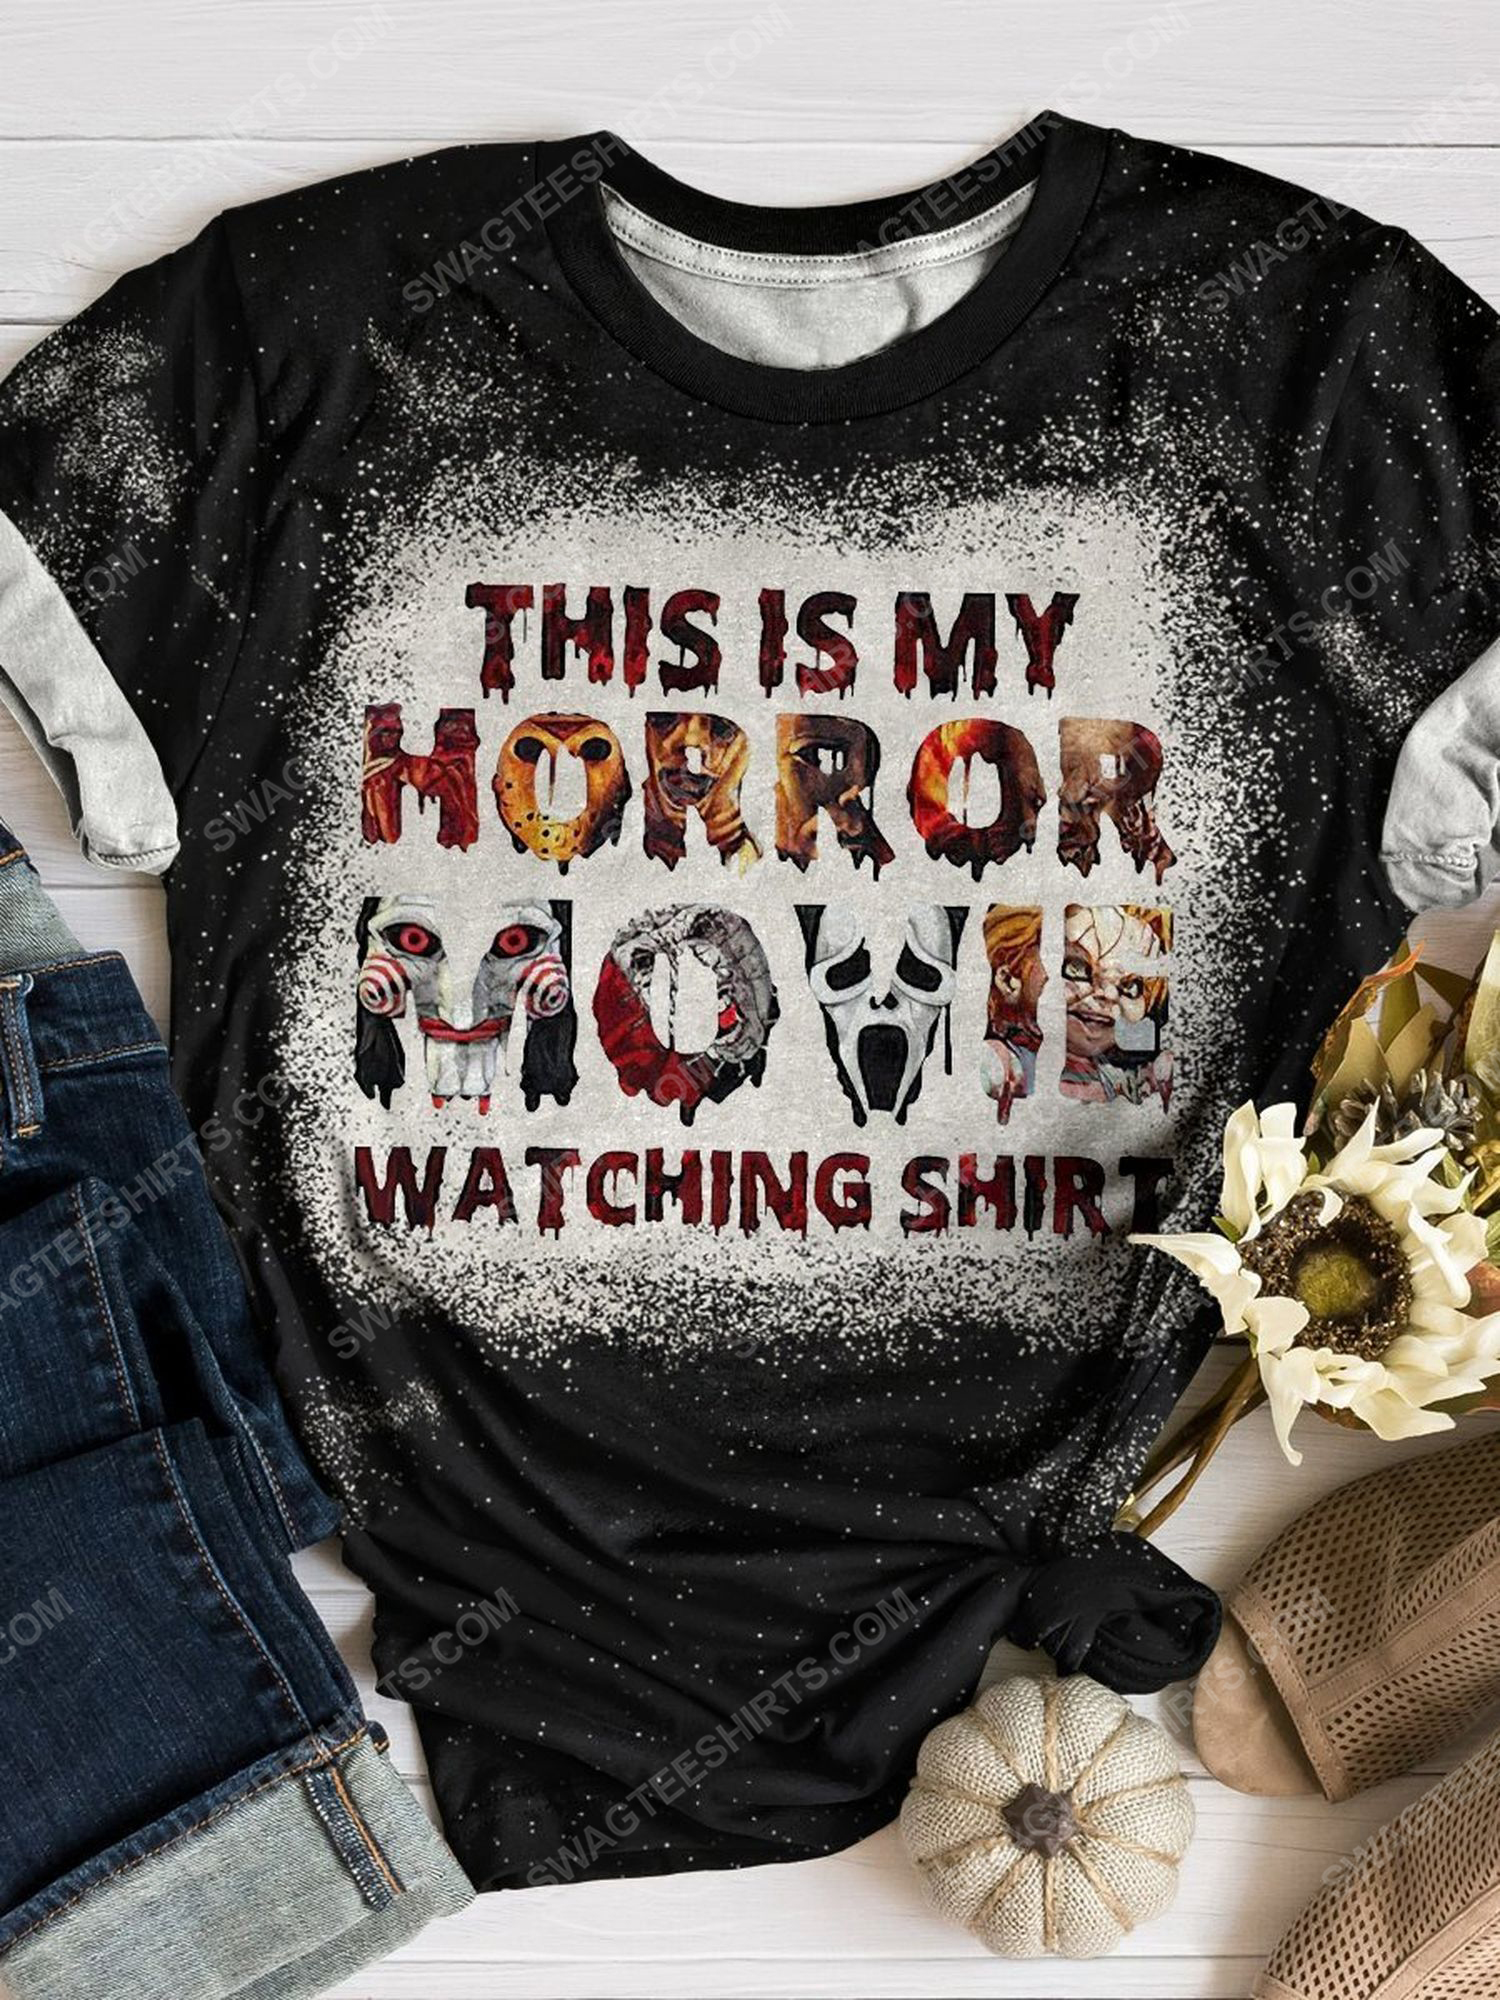 This is my horror movie watching shirt bleached shirt 1 - Copy (3)